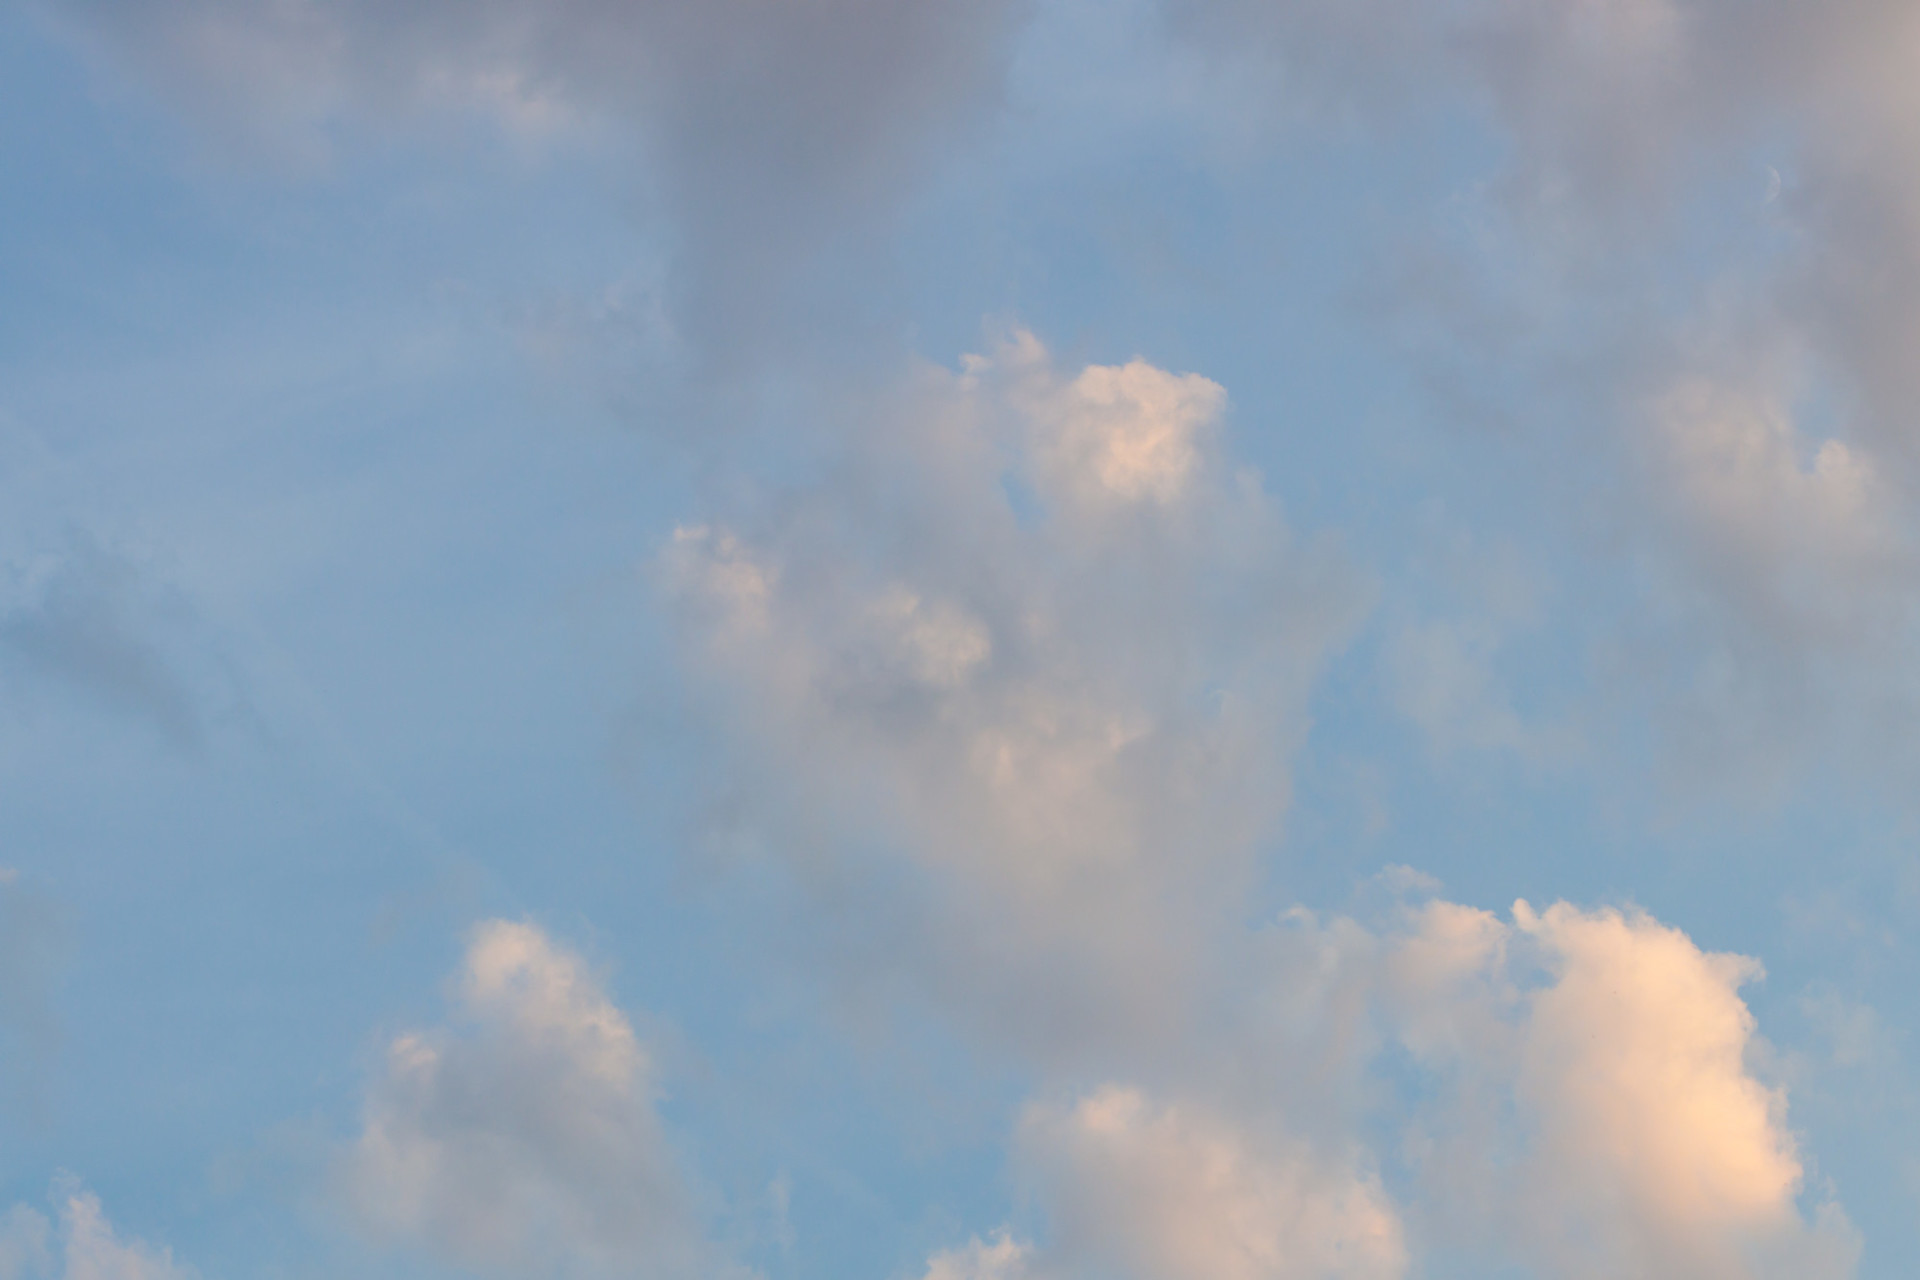 Beautiful sky with soft clouds